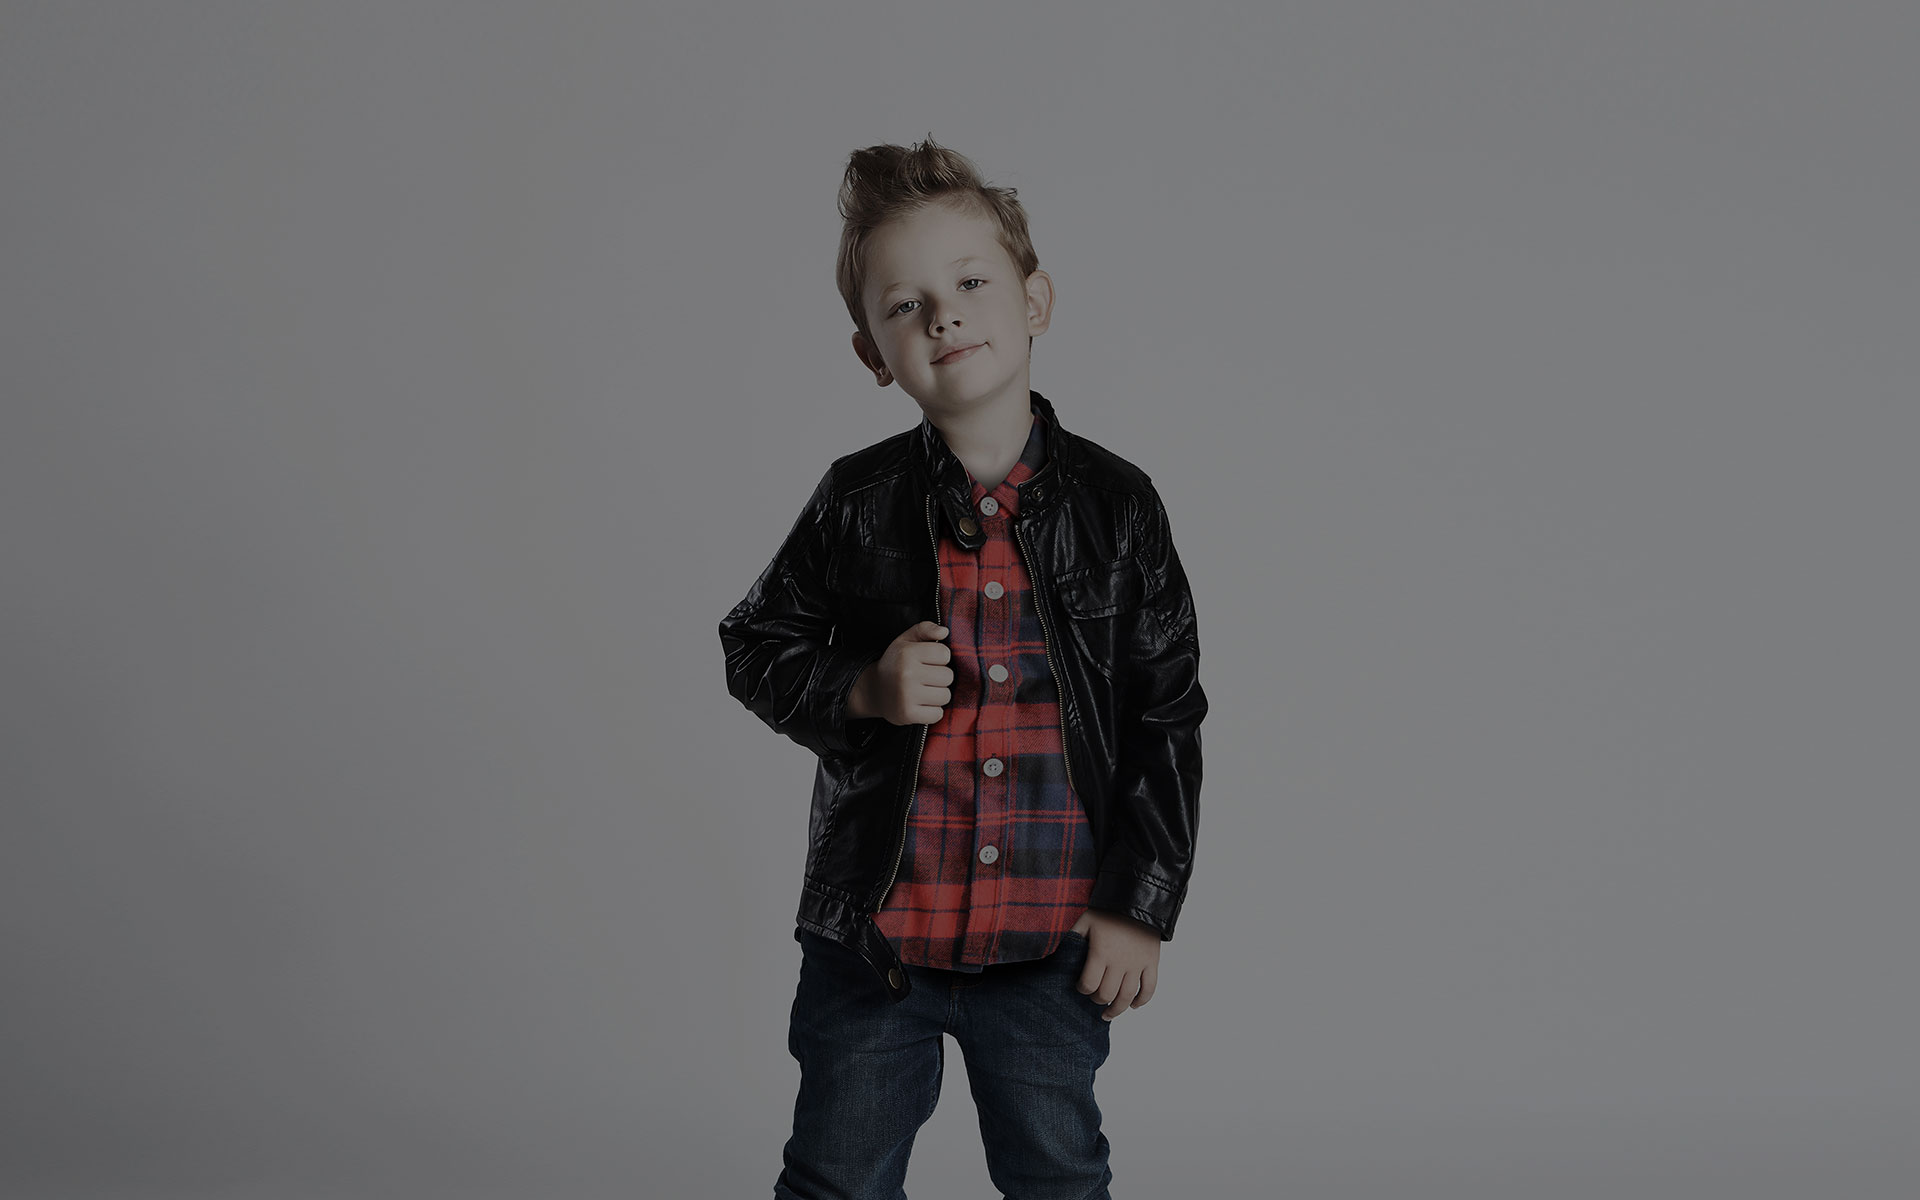 KIDS APPAREL BRAND SHISKY